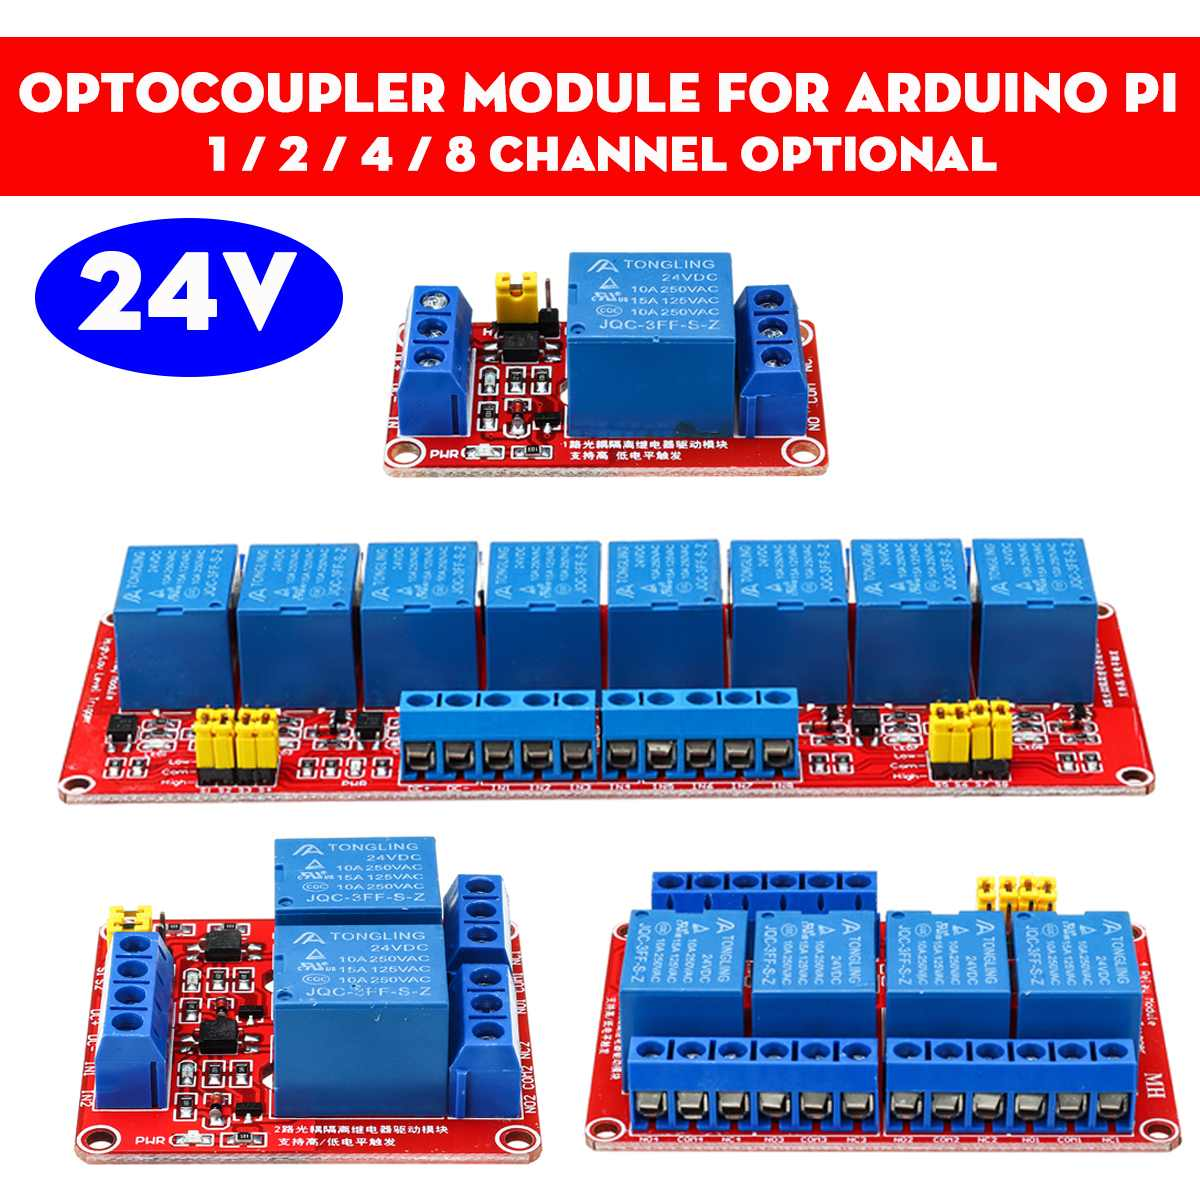 5V <font><b>12V</b></font> <font><b>24V</b></font> 1 2 4 8 Channel Relay Module with Optocoupler Relay Output Relay Module For <font><b>Arduino</b></font> image